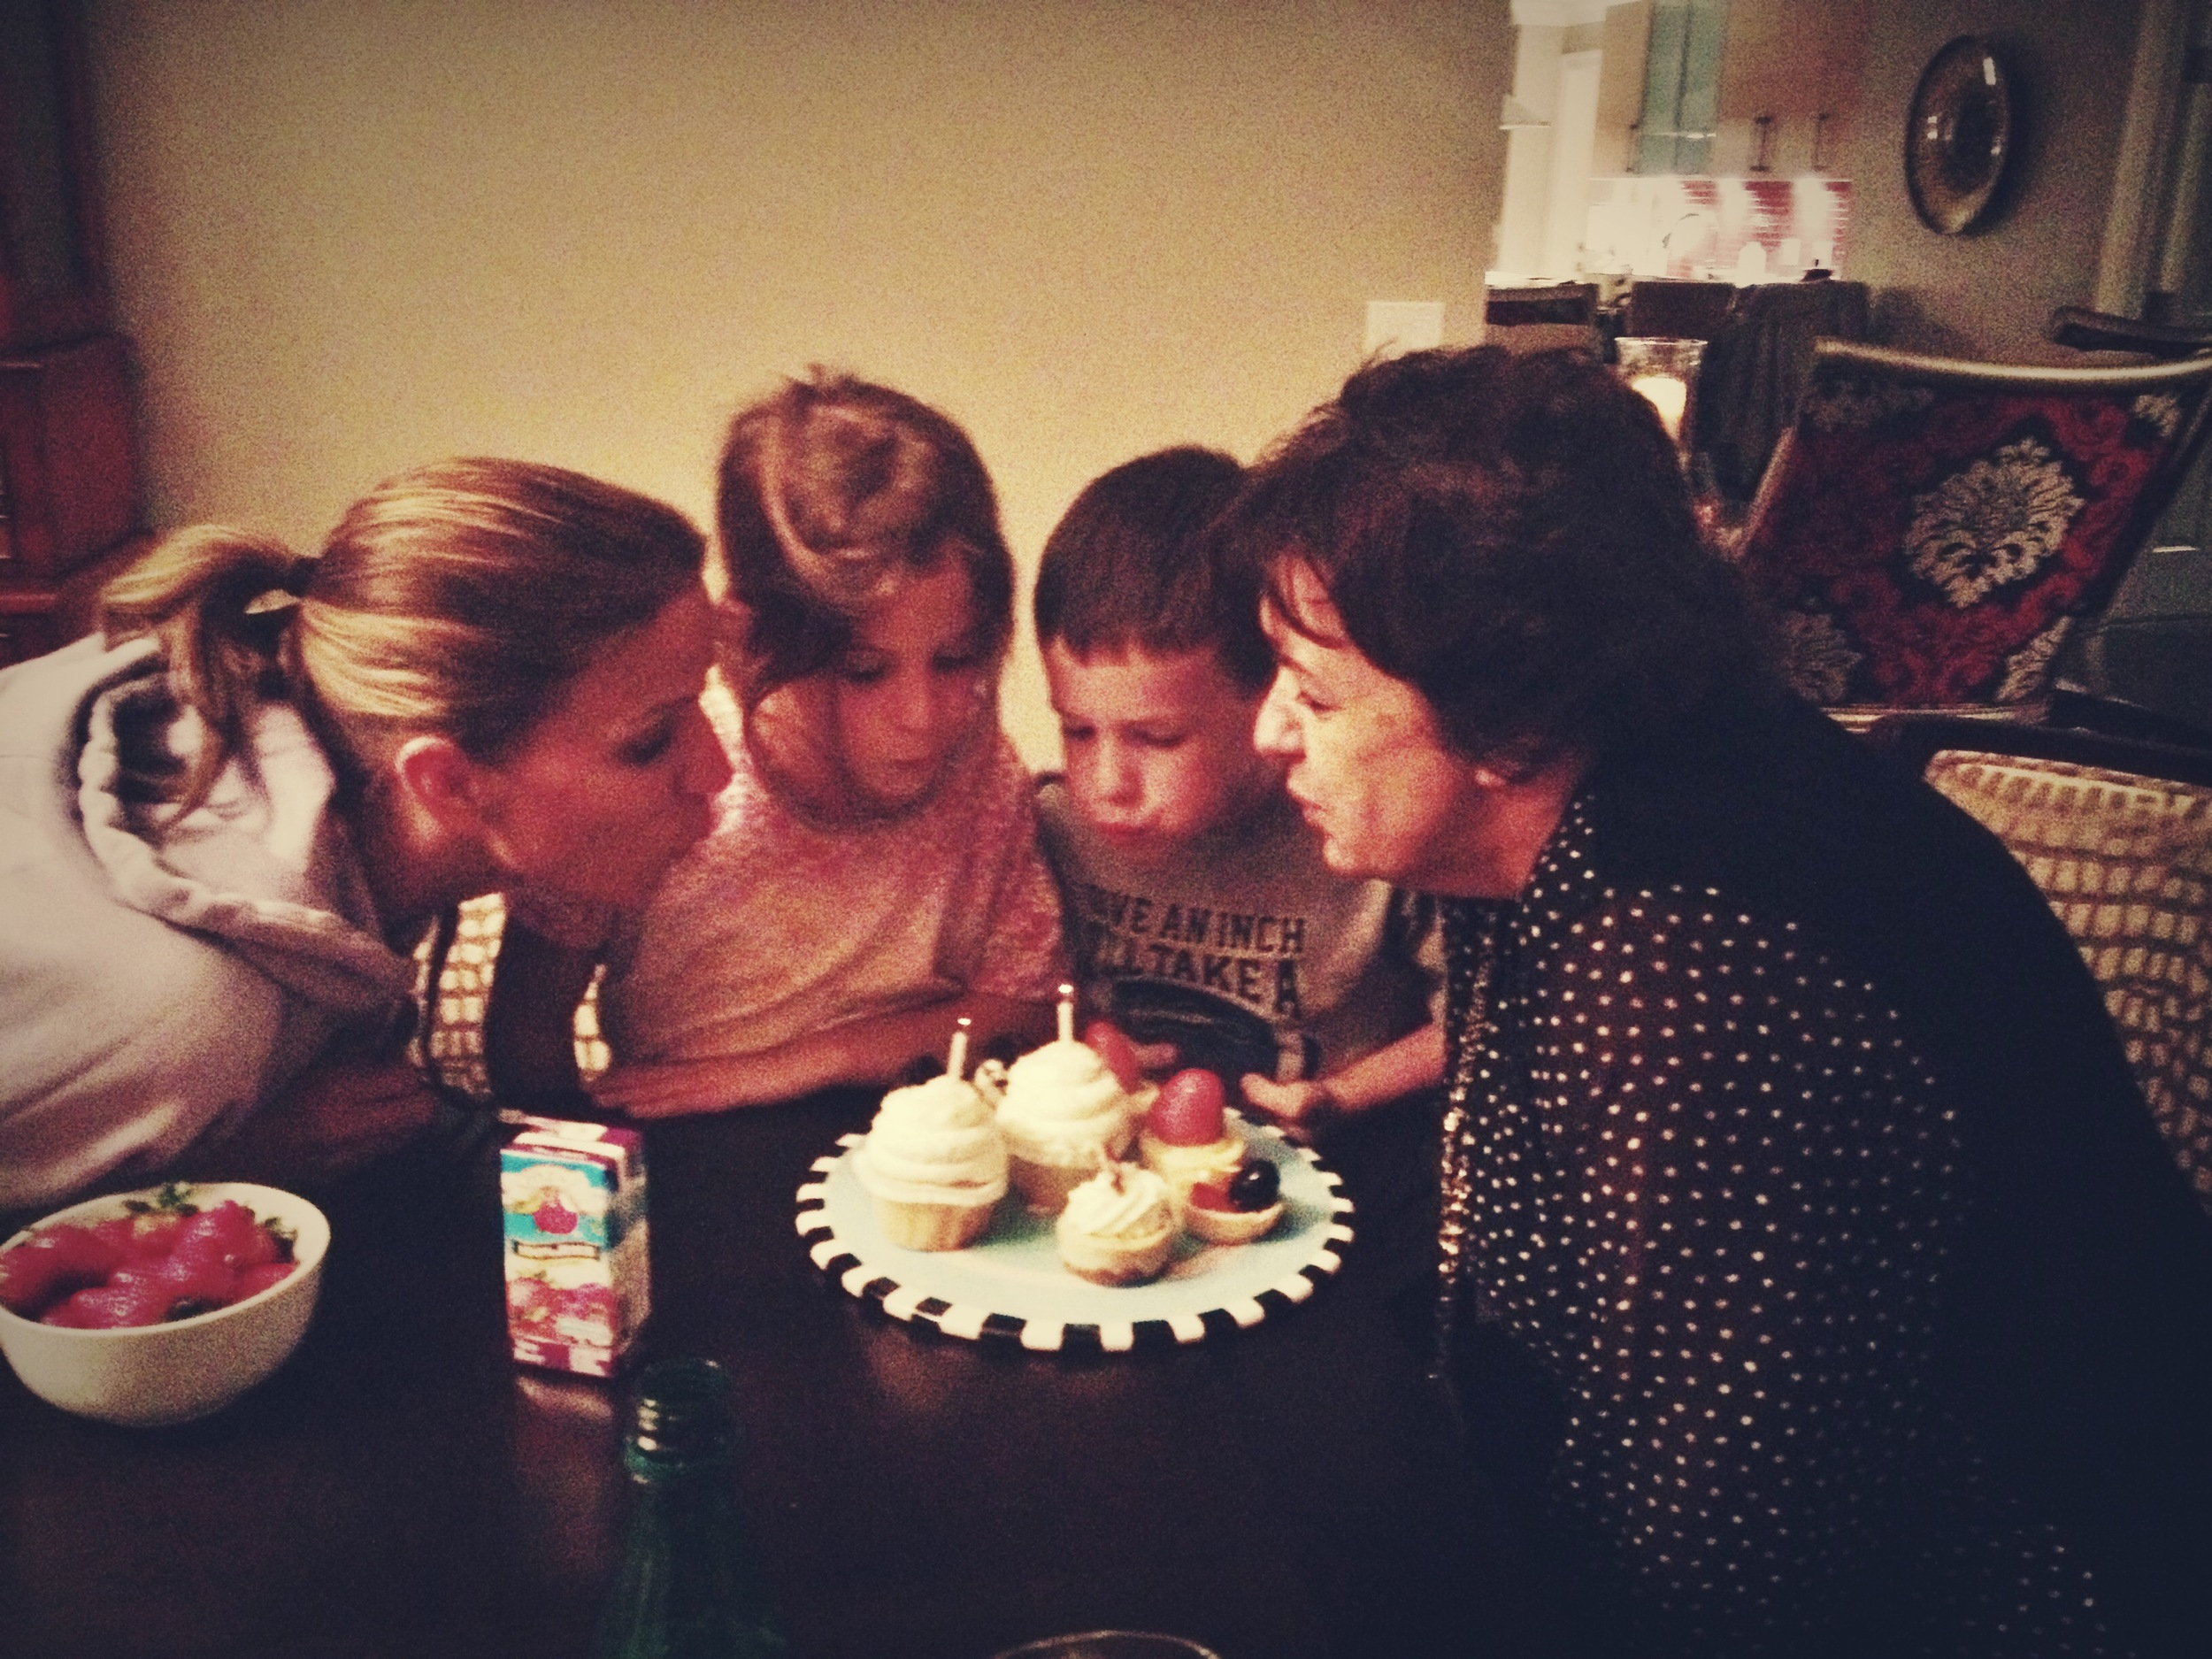 Whitney and Mom get some help from Taylor and Connor, while blowing out their birthday candles. In lieu of a cake, which would have provided lots of left overs, we went for cupcakes and small tarts with organic strawberries for dessert.